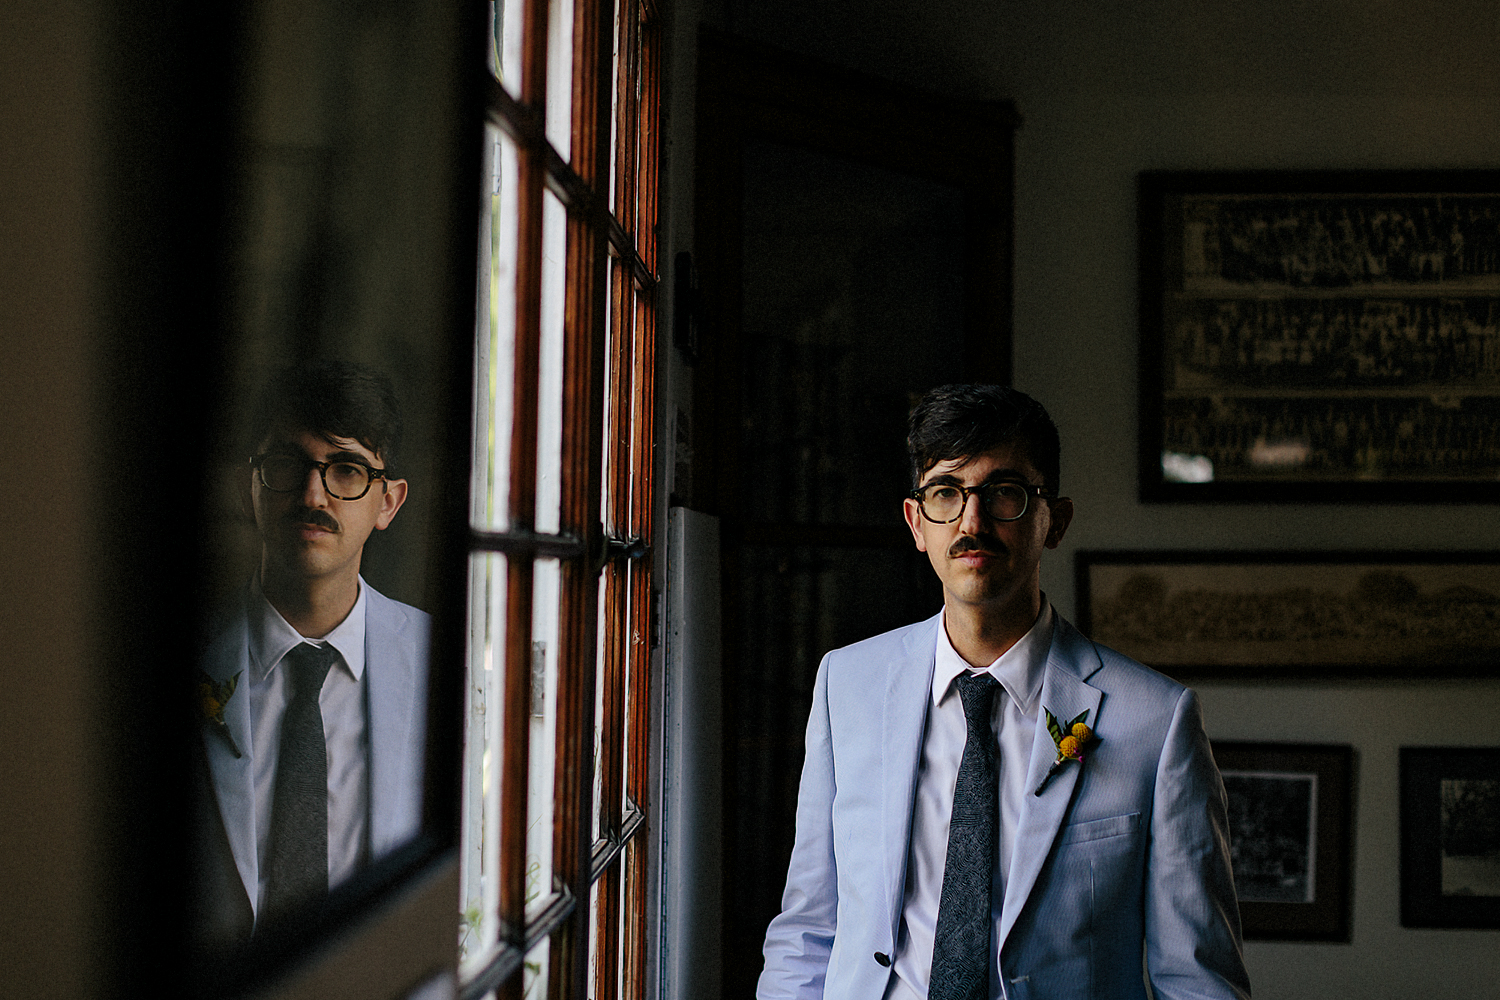 Best-Wedding-Photographers-Toronto-with-documentary-style-photojournalistic-wedding-photographer-editorial-cool-hip-timeless-Intimate-Vintage-Toronto-Island-Cafe-Clubhouse-Wedding-Groom-Candid-Getting-Ready-Portrait.jpg